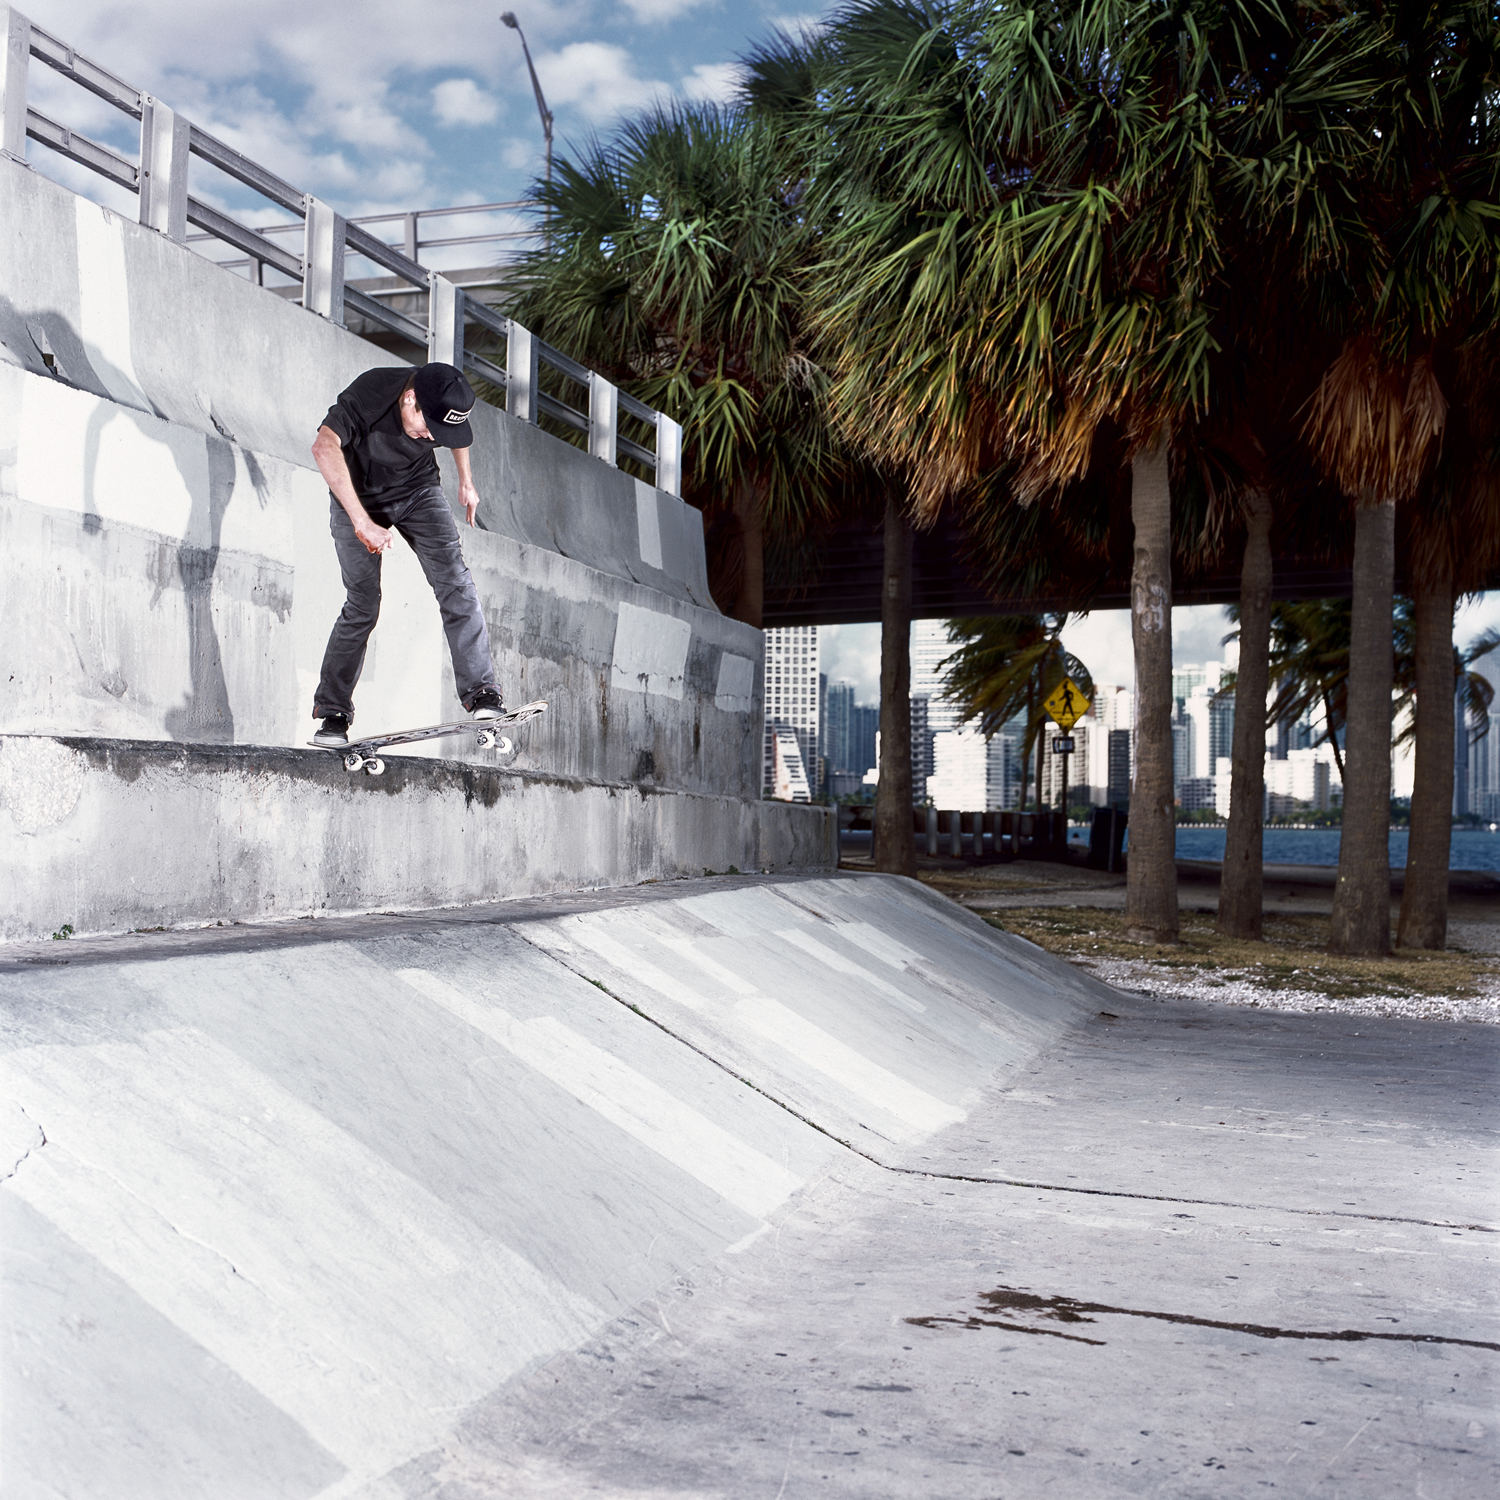 Sam Lind, Backside Tailslide, Miami, FL 2012